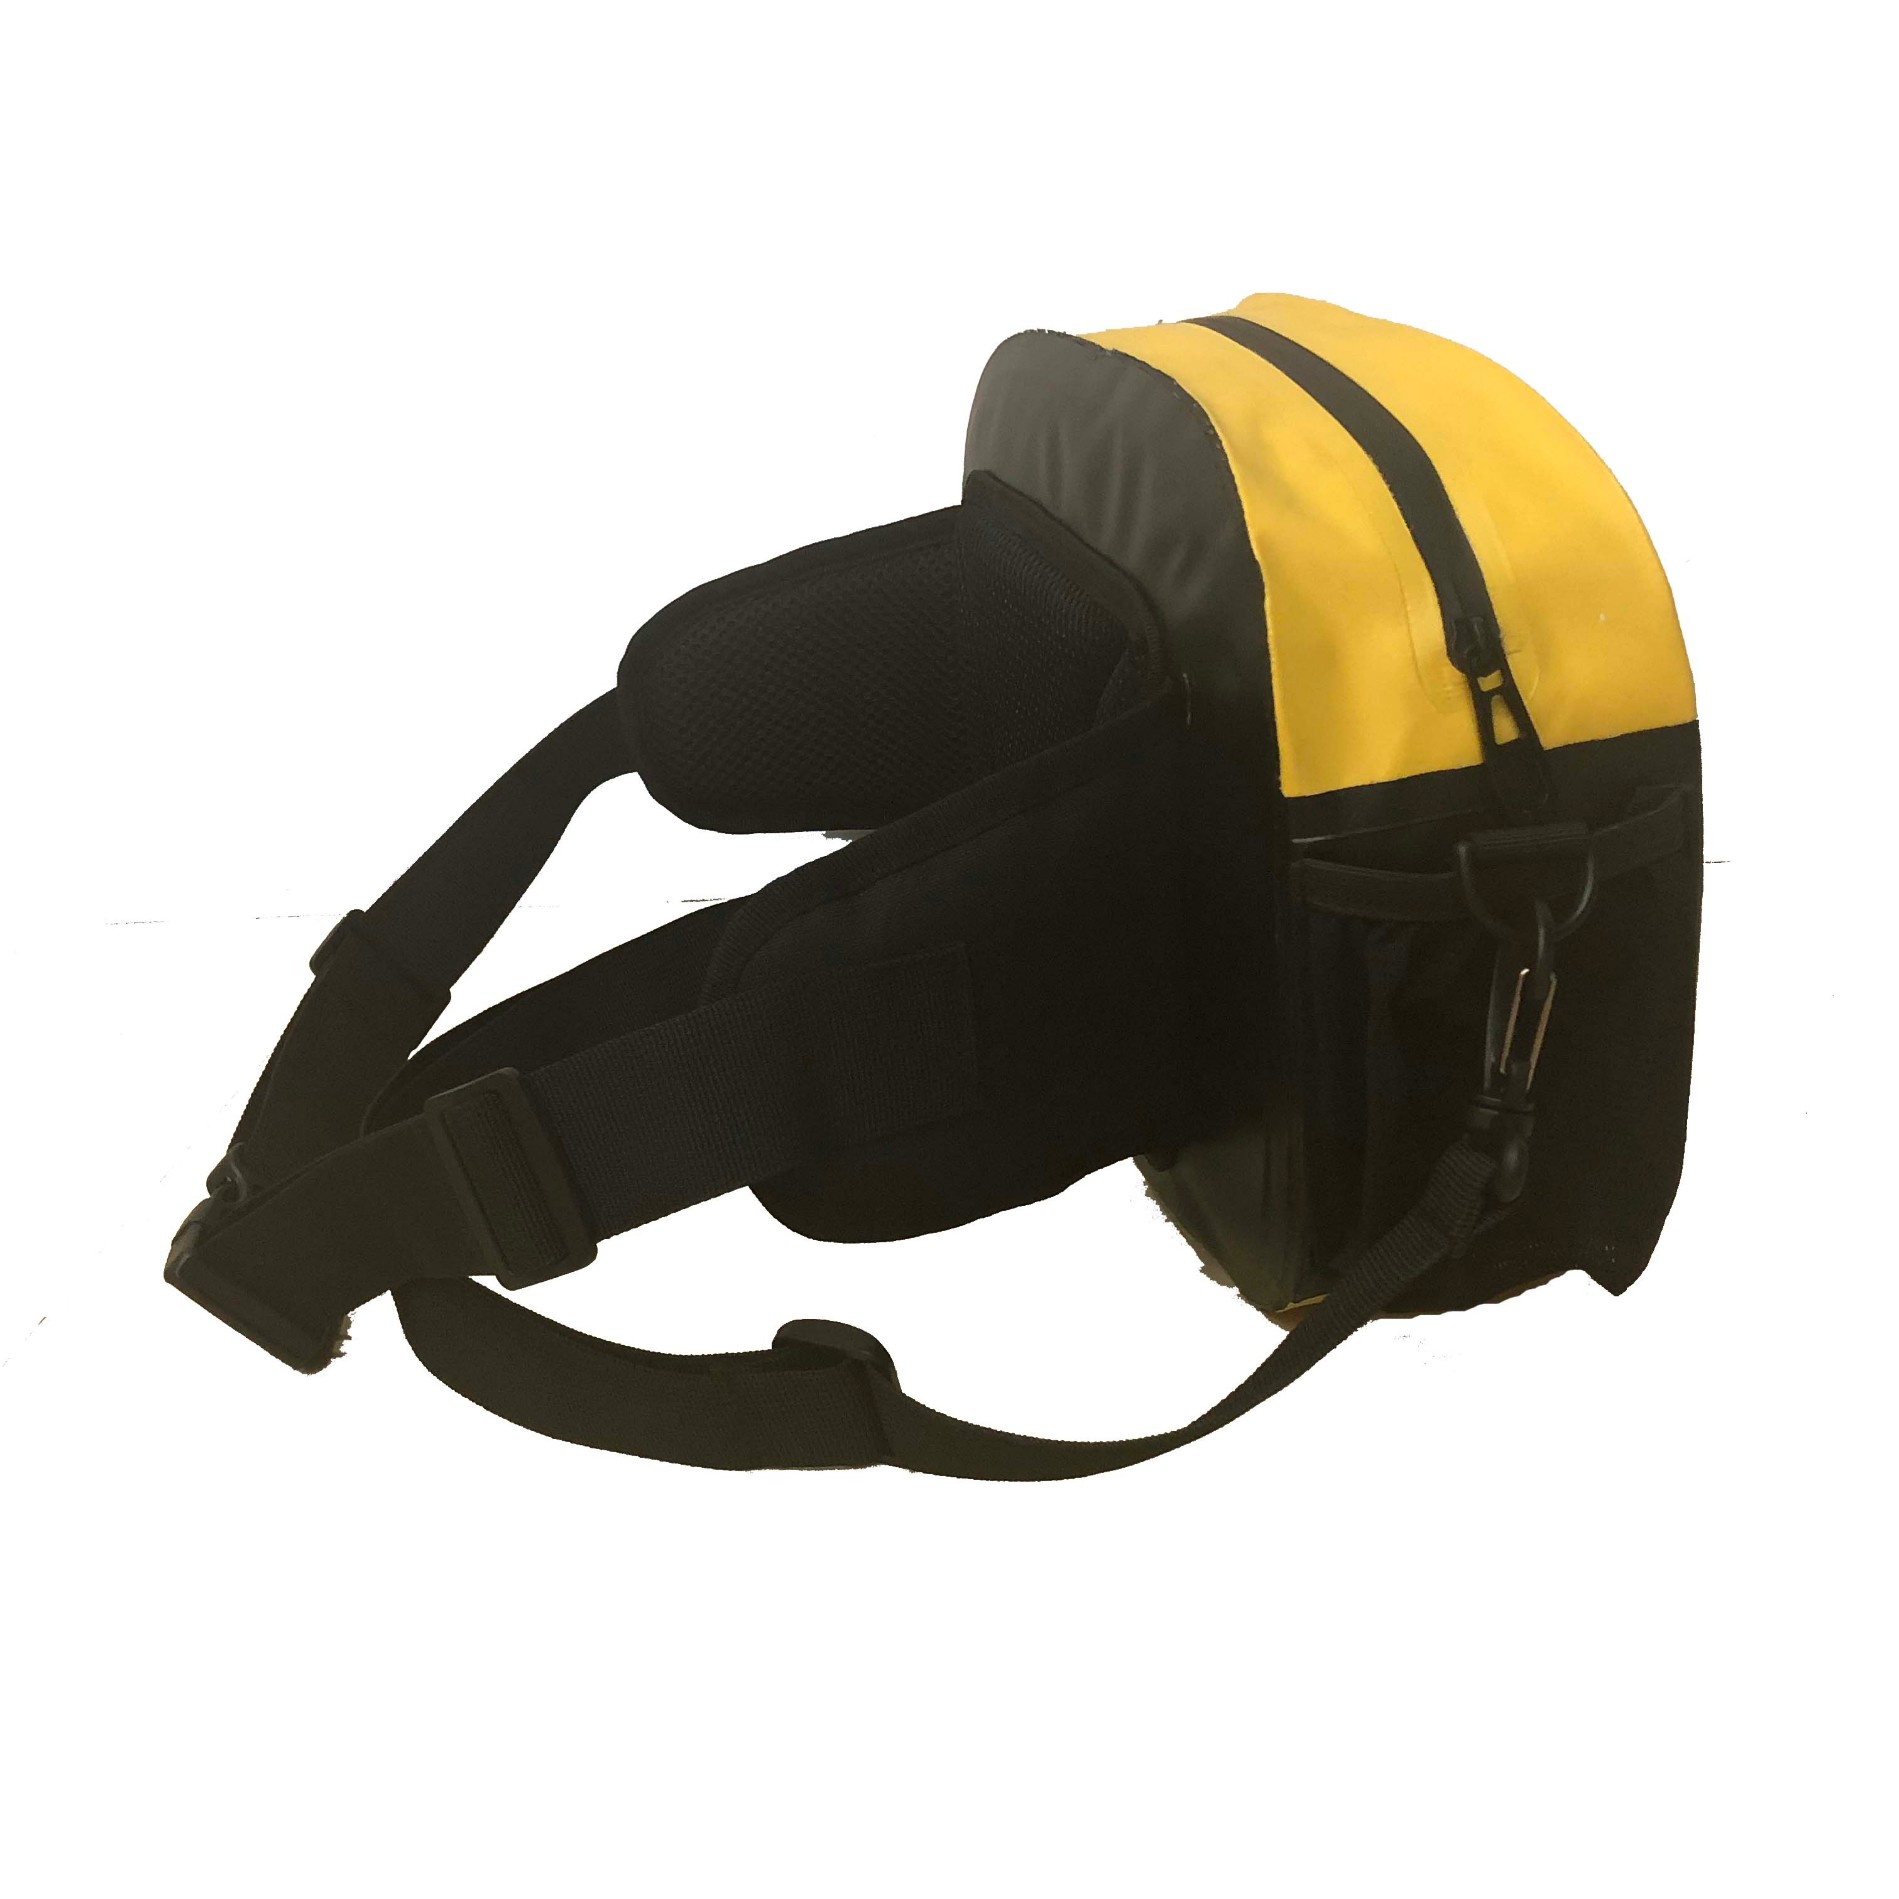 Dry Bag Fanny Pack Manufacturers, Dry Bag Fanny Pack Factory, Supply Dry Bag Fanny Pack